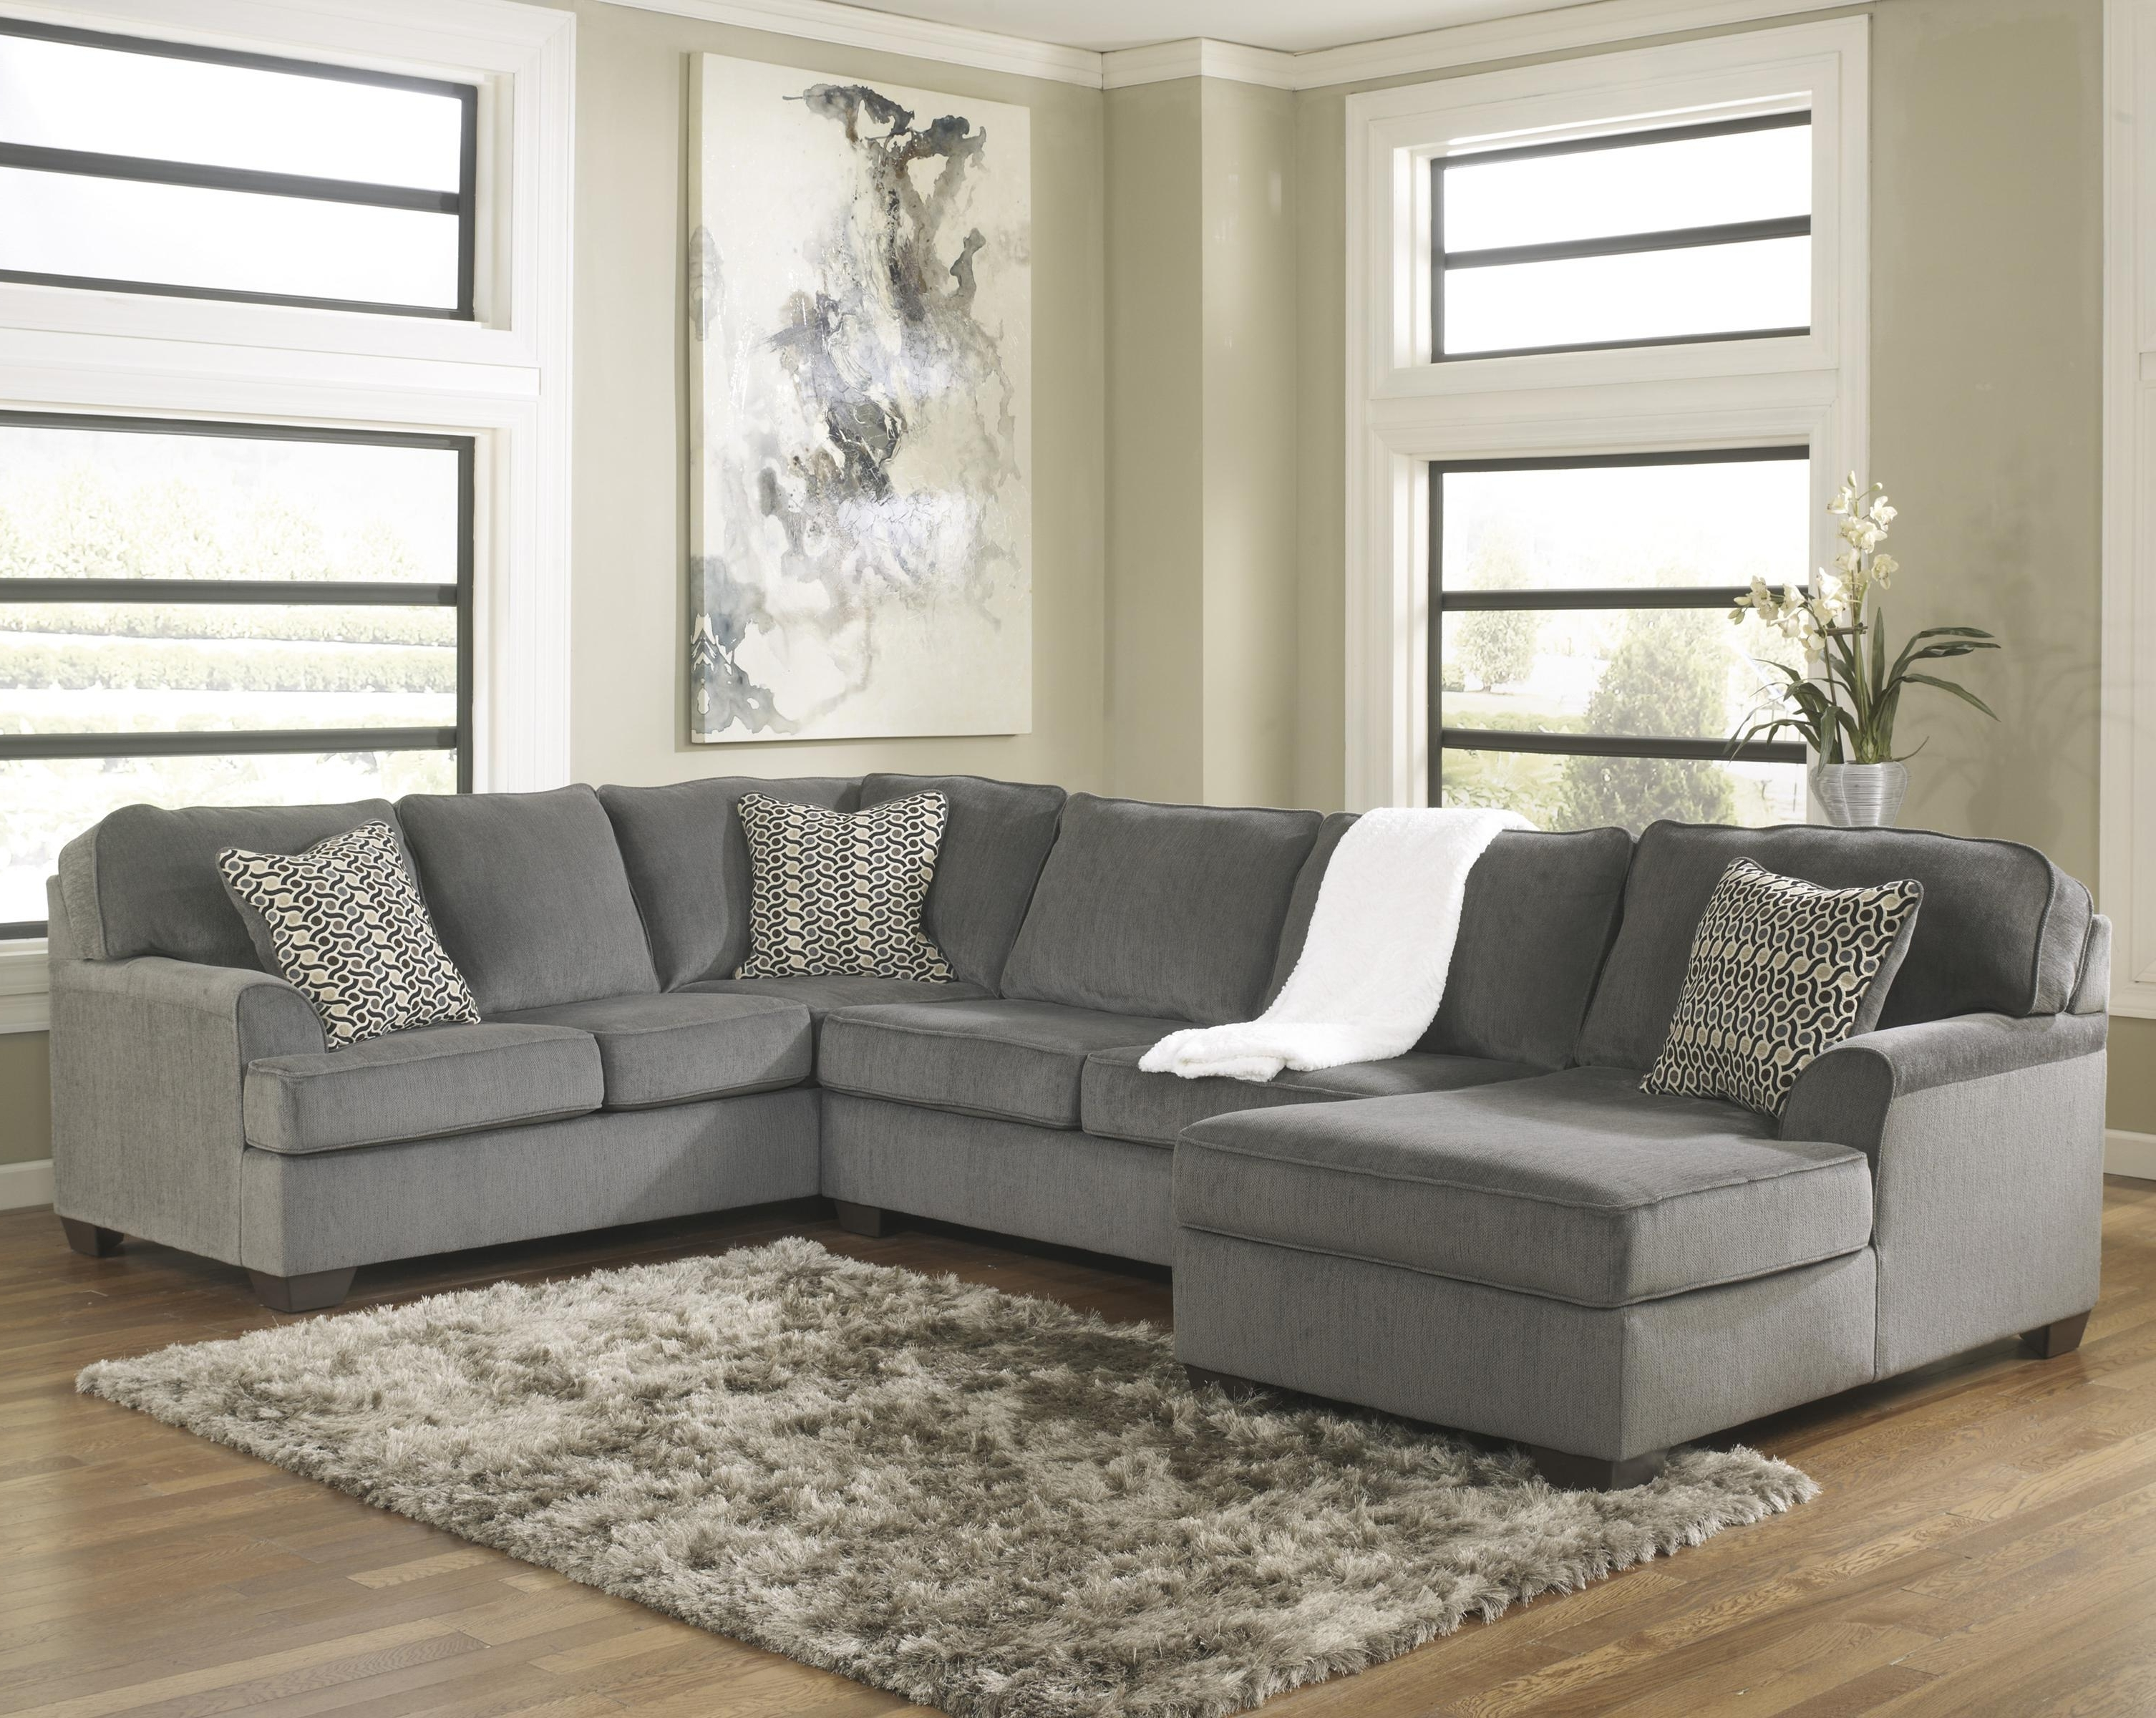 Ashley Furniture Chaise Sofas Pertaining To Famous Ashley Furniture Loric – Smoke Contemporary 3 Piece Sectional With (View 3 of 15)